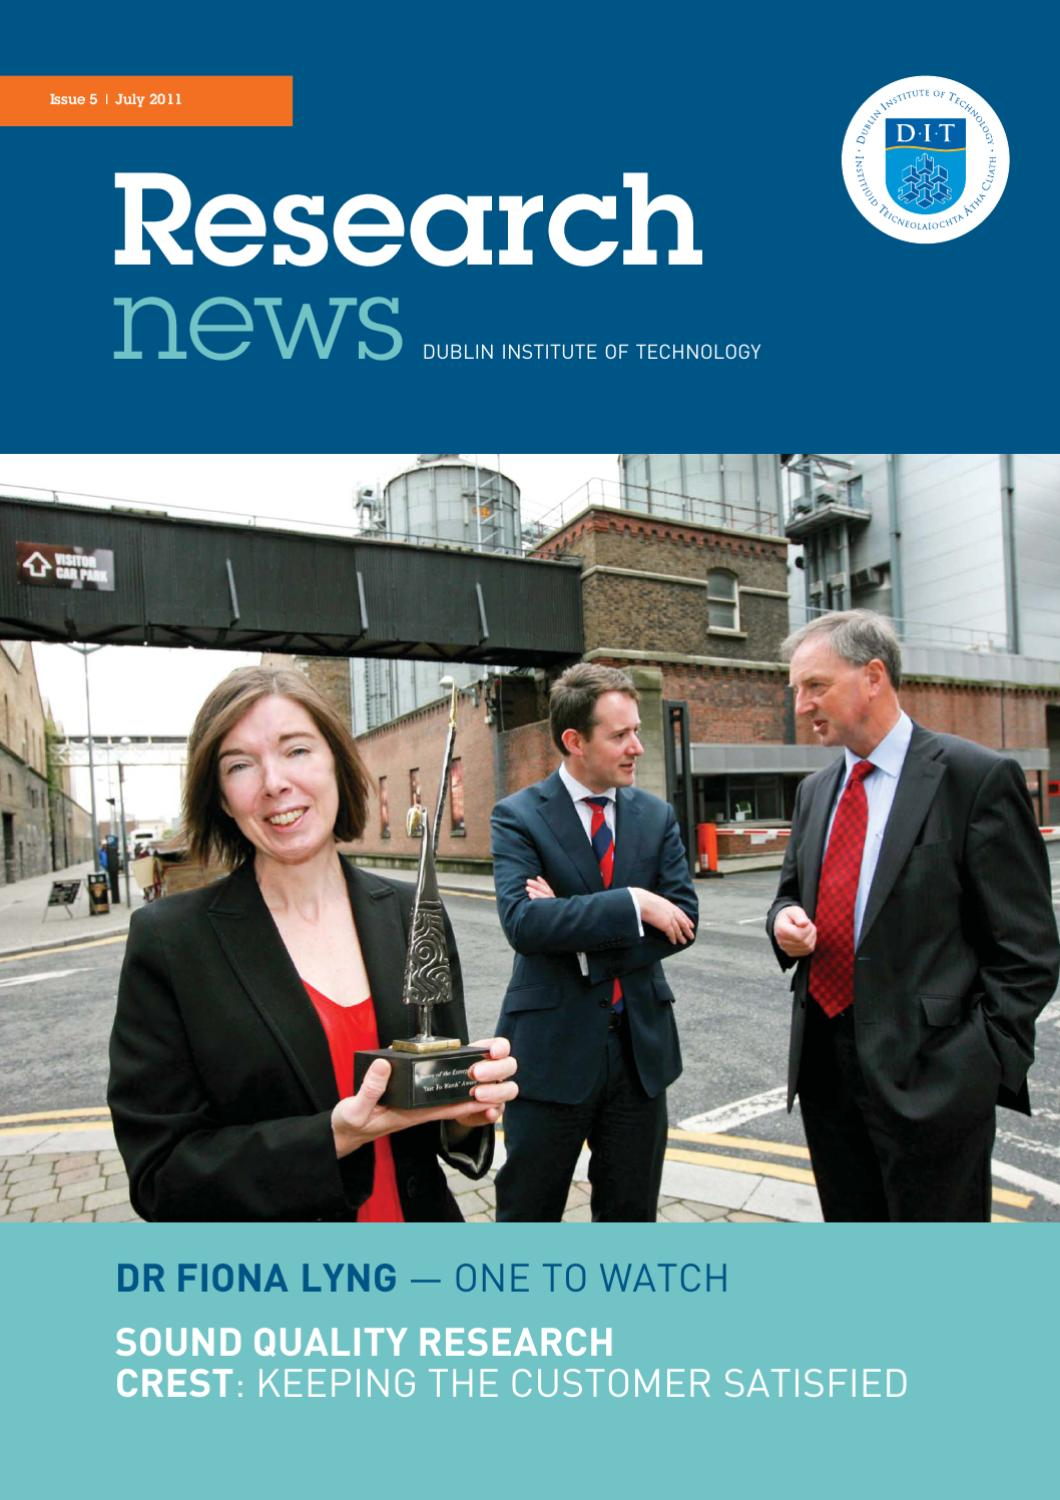 Research News July 2011 by TU Dublin - issuu